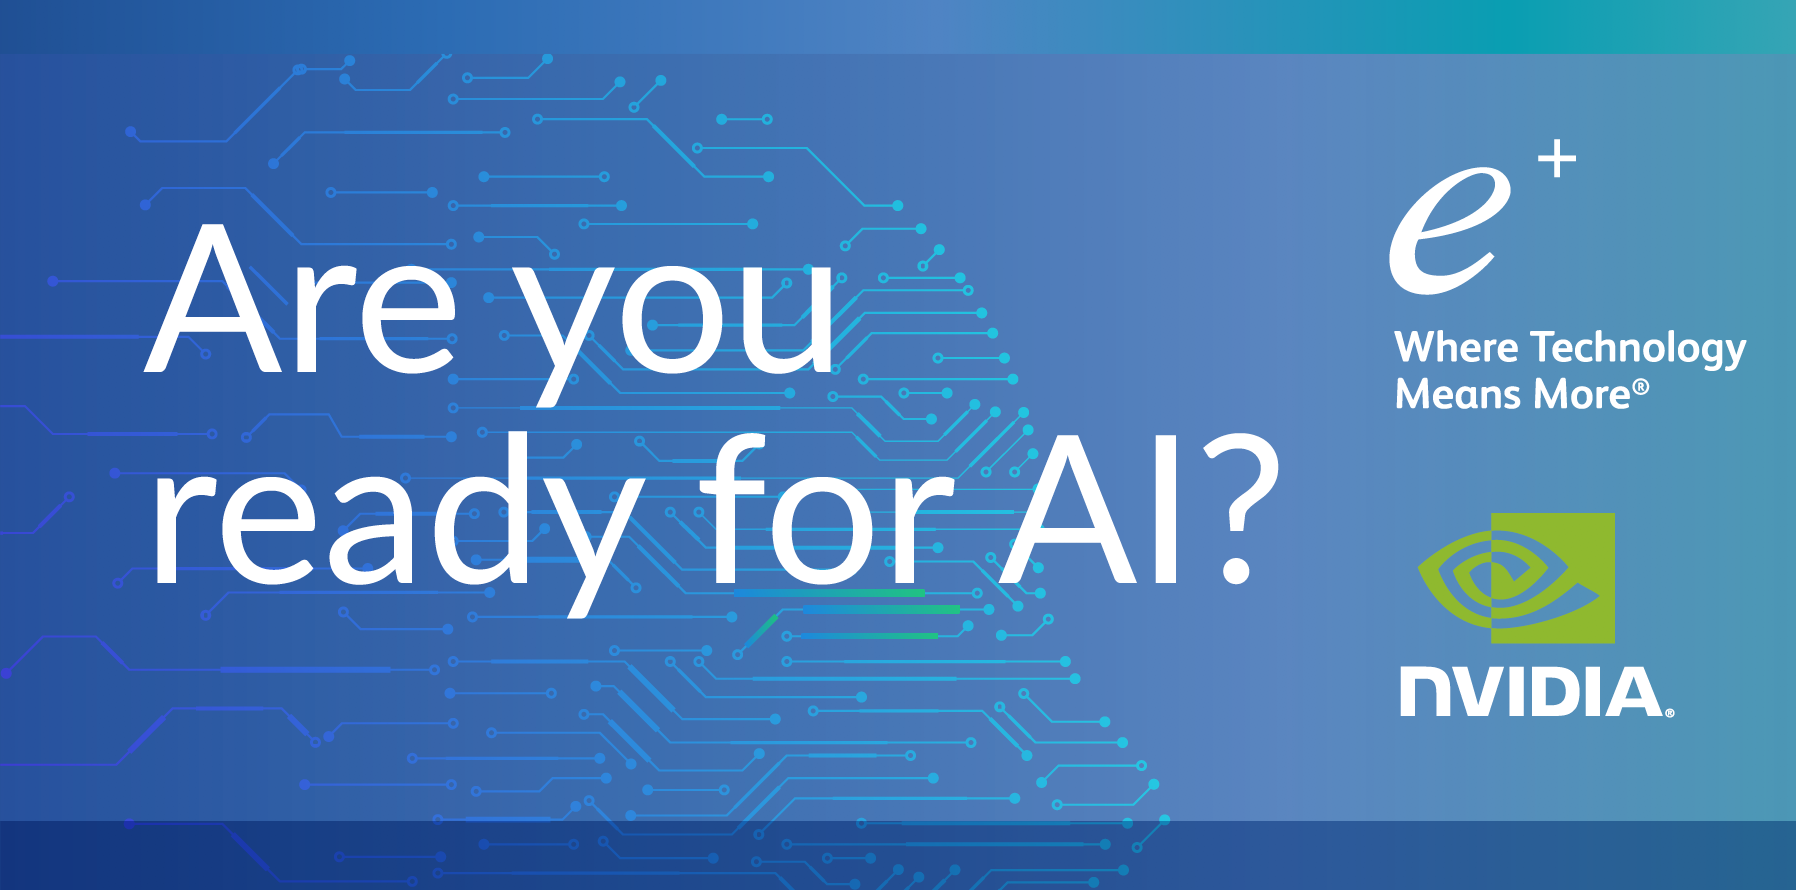 Are you ready for AI?